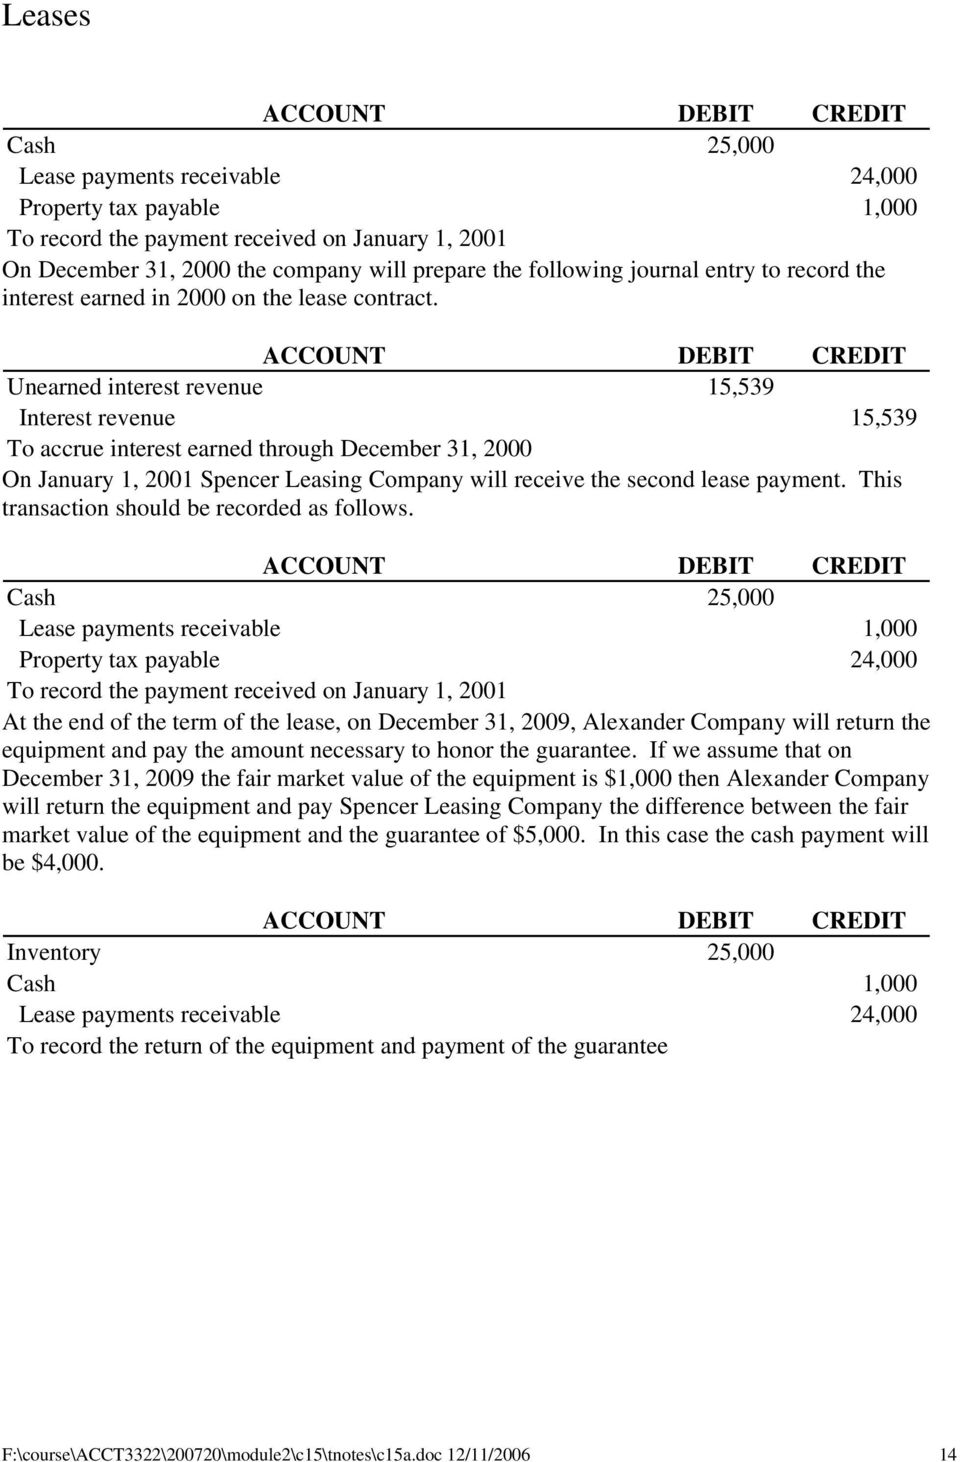 Unearned interest revenue 15,539 Interest revenue 15,539 To accrue interest earned through December 31, 2000 On January 1, 2001 Spencer Leasing Company will receive the second lease payment.